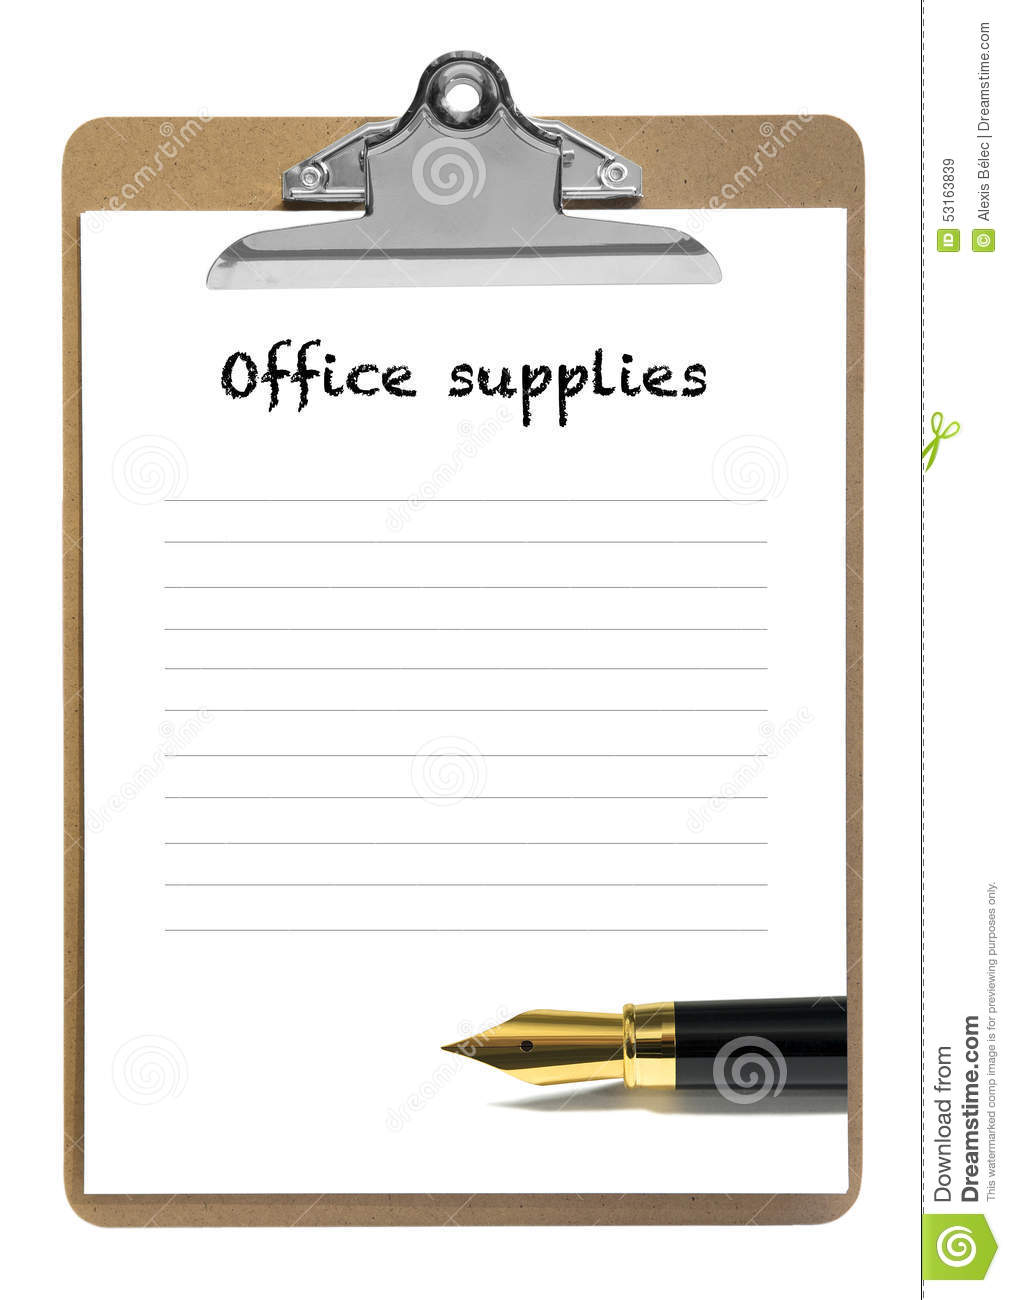 Liste de fourniture de bureau photo stock image 53163839 for Achat fourniture de bureau